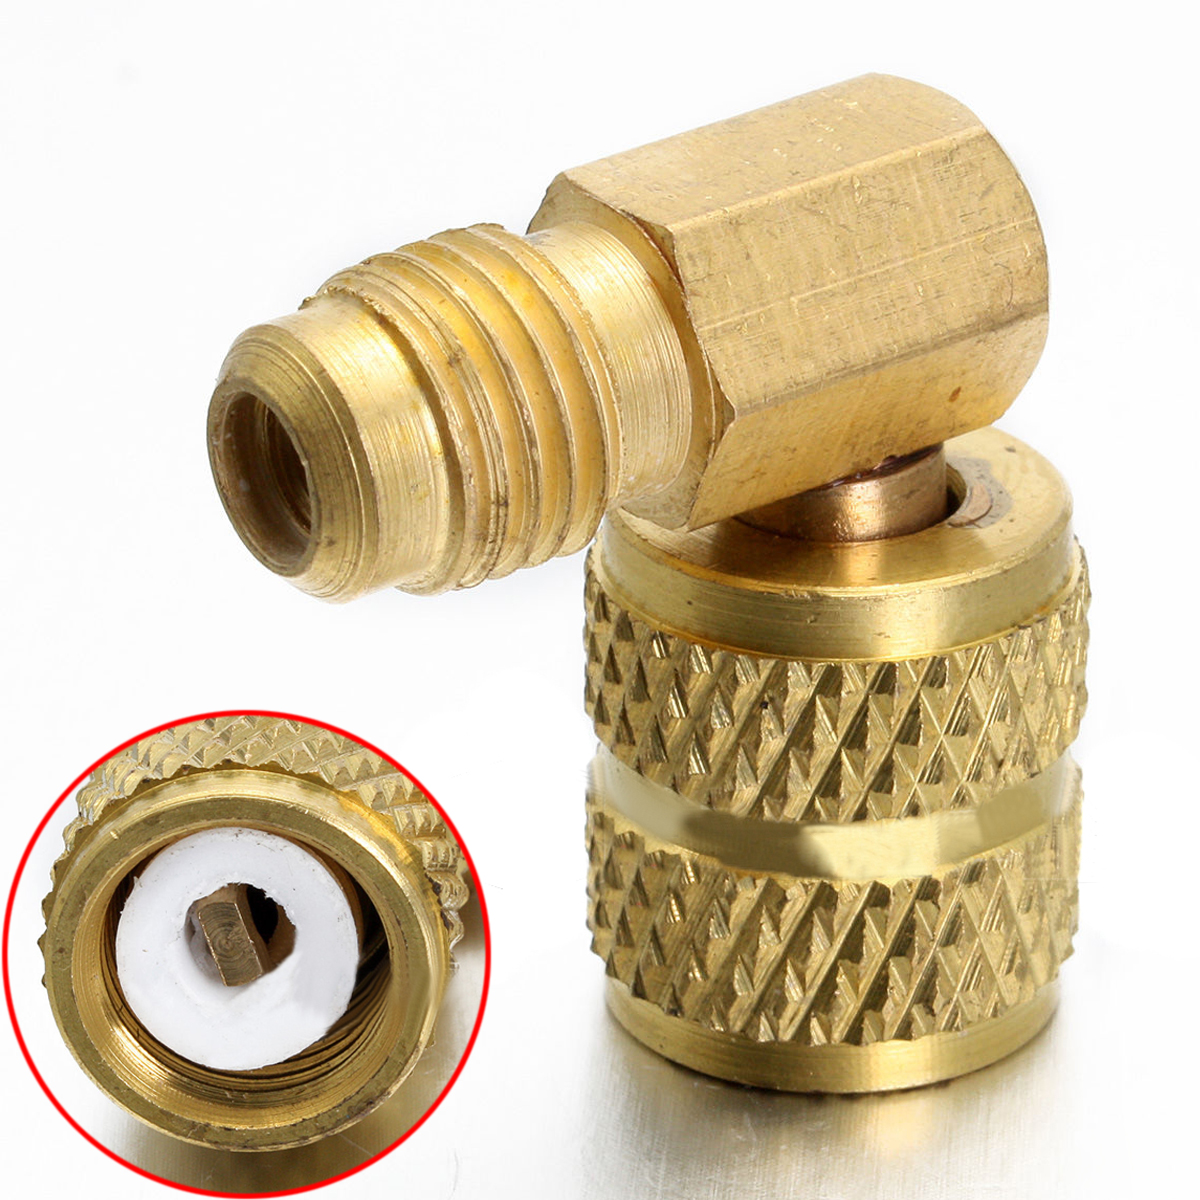 DWZ 1pc Brass <font><b>Auto</b></font> <font><b>AC</b></font> Refrigeration Adapter Connector Adaptor for R410A Gauges Hose image